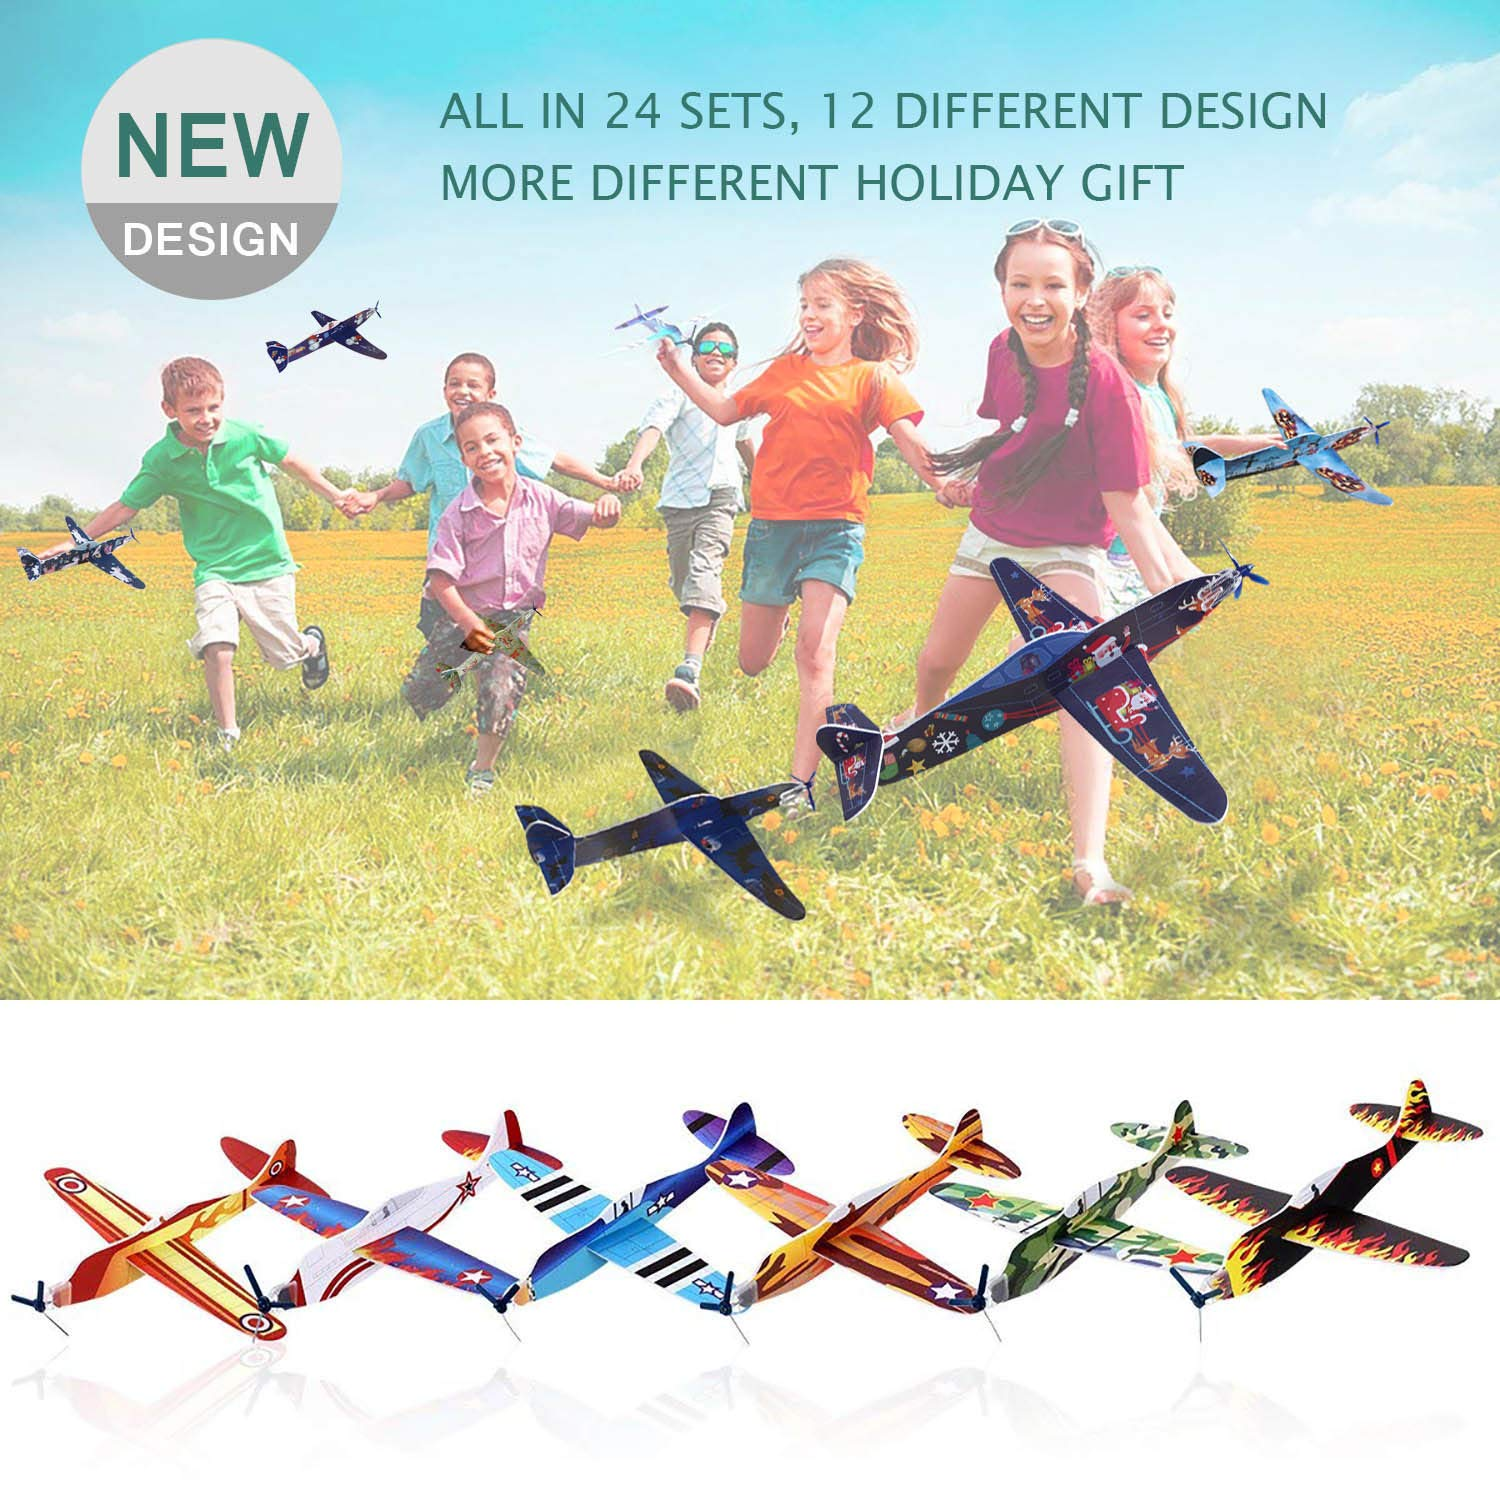 Smilkat Glider Plane Party Favors - 12 New Models 24 Pack 8 inch Flying Styrofoam Airplanes, Easy Assembly, Kids Toy for Birthday Party, School Classroom Rewards Carnival Prizes by Smilkat (Image #3)